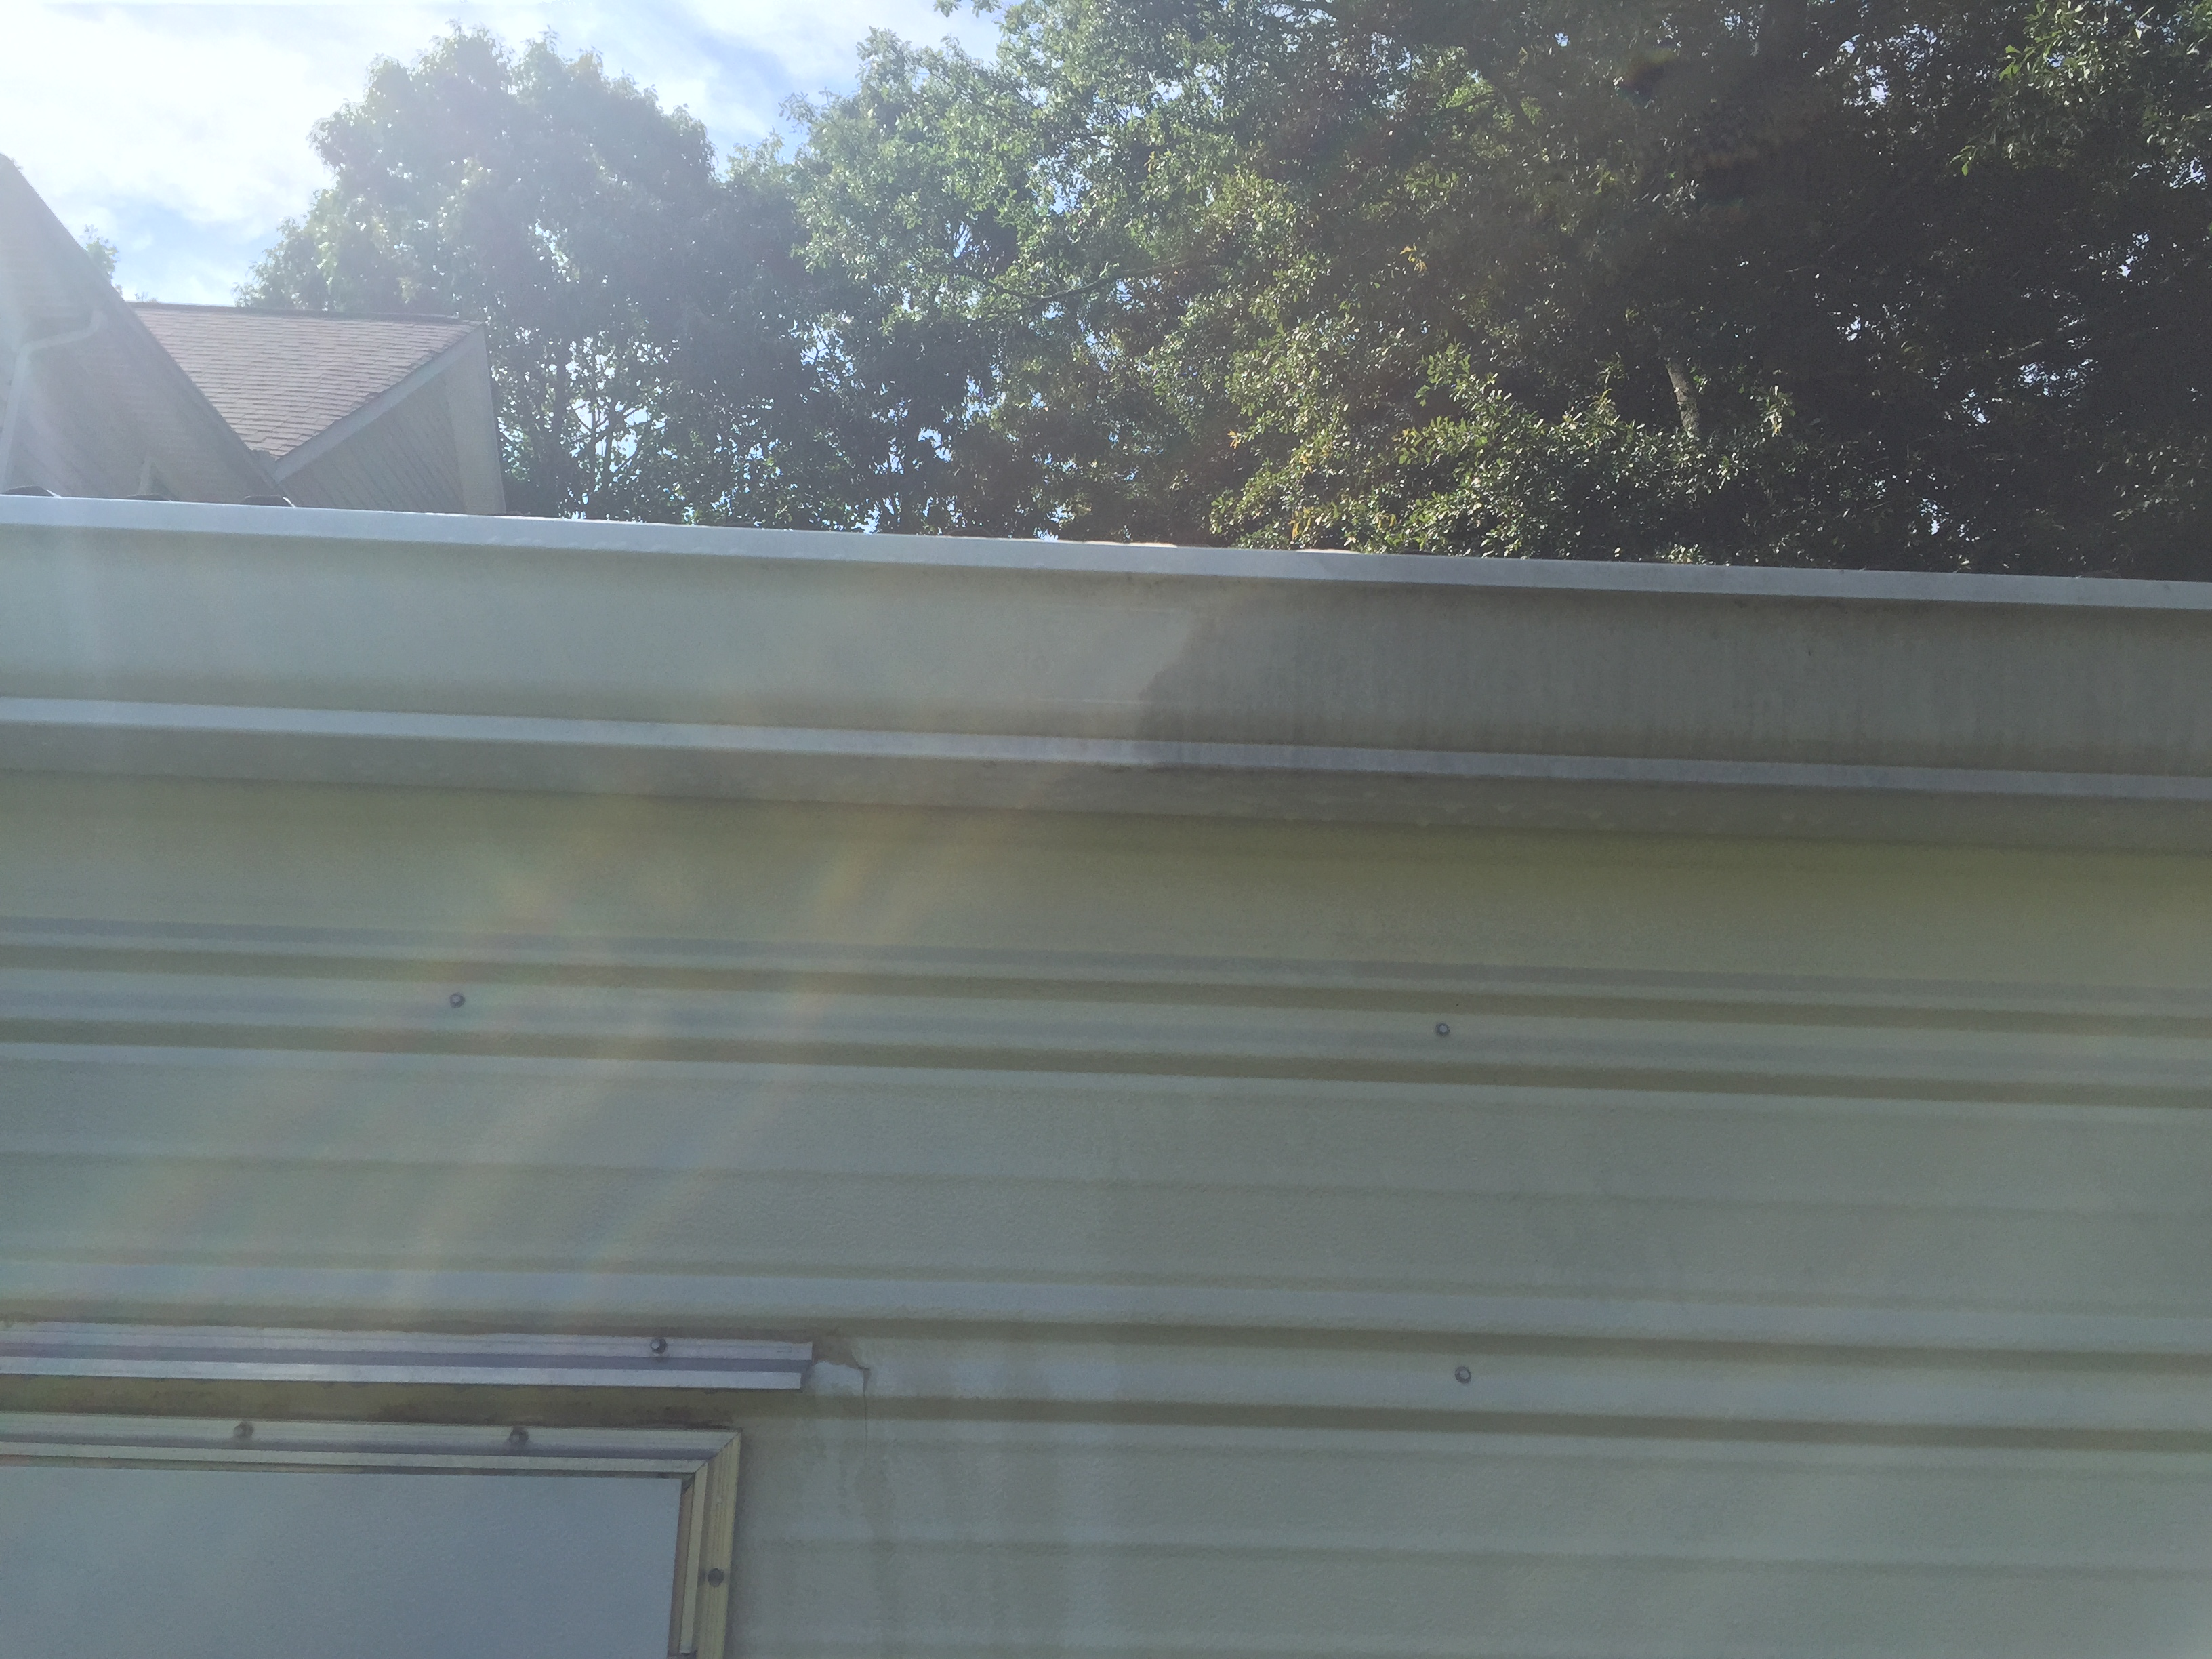 When Is It Time to Clean My Gutters?